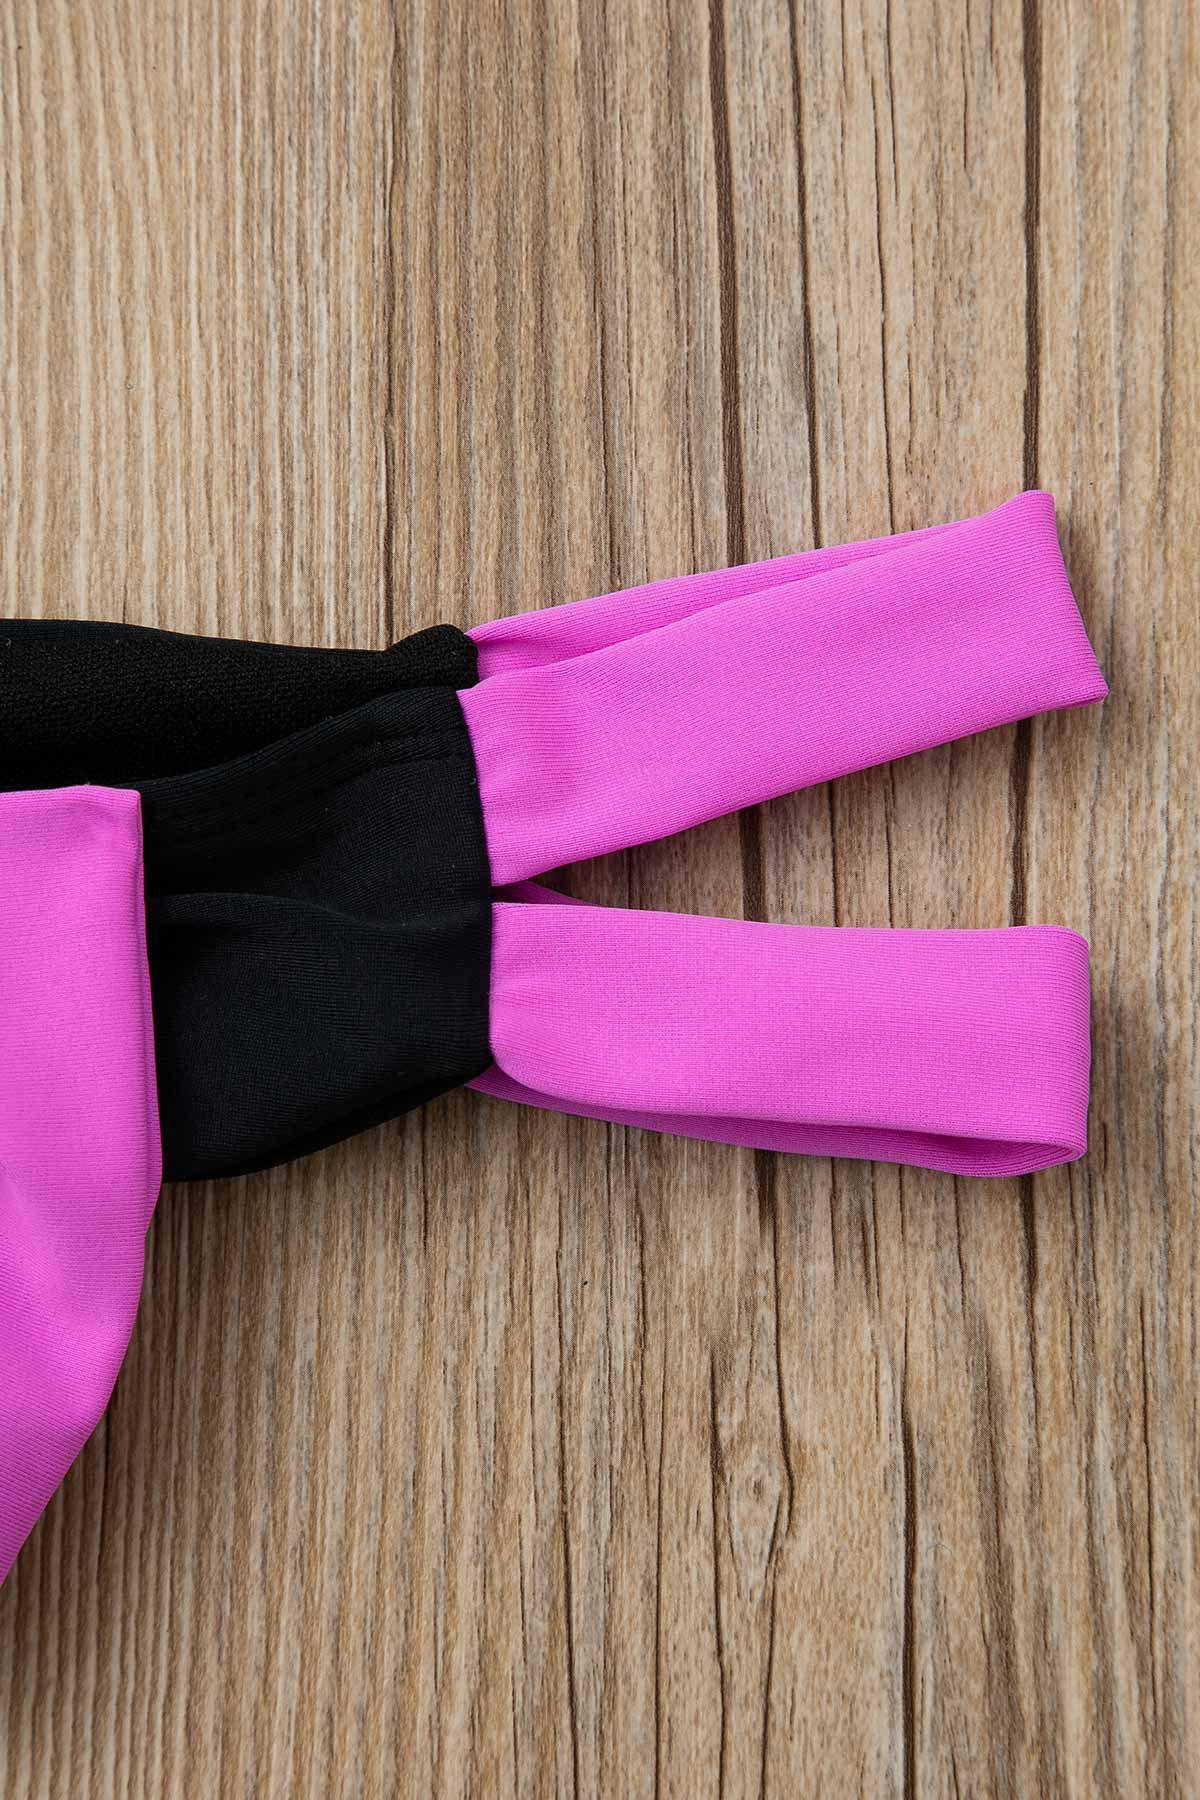 Sexy Color Block Bowknot Embellished Women's Briefs - BLACK/PINK M